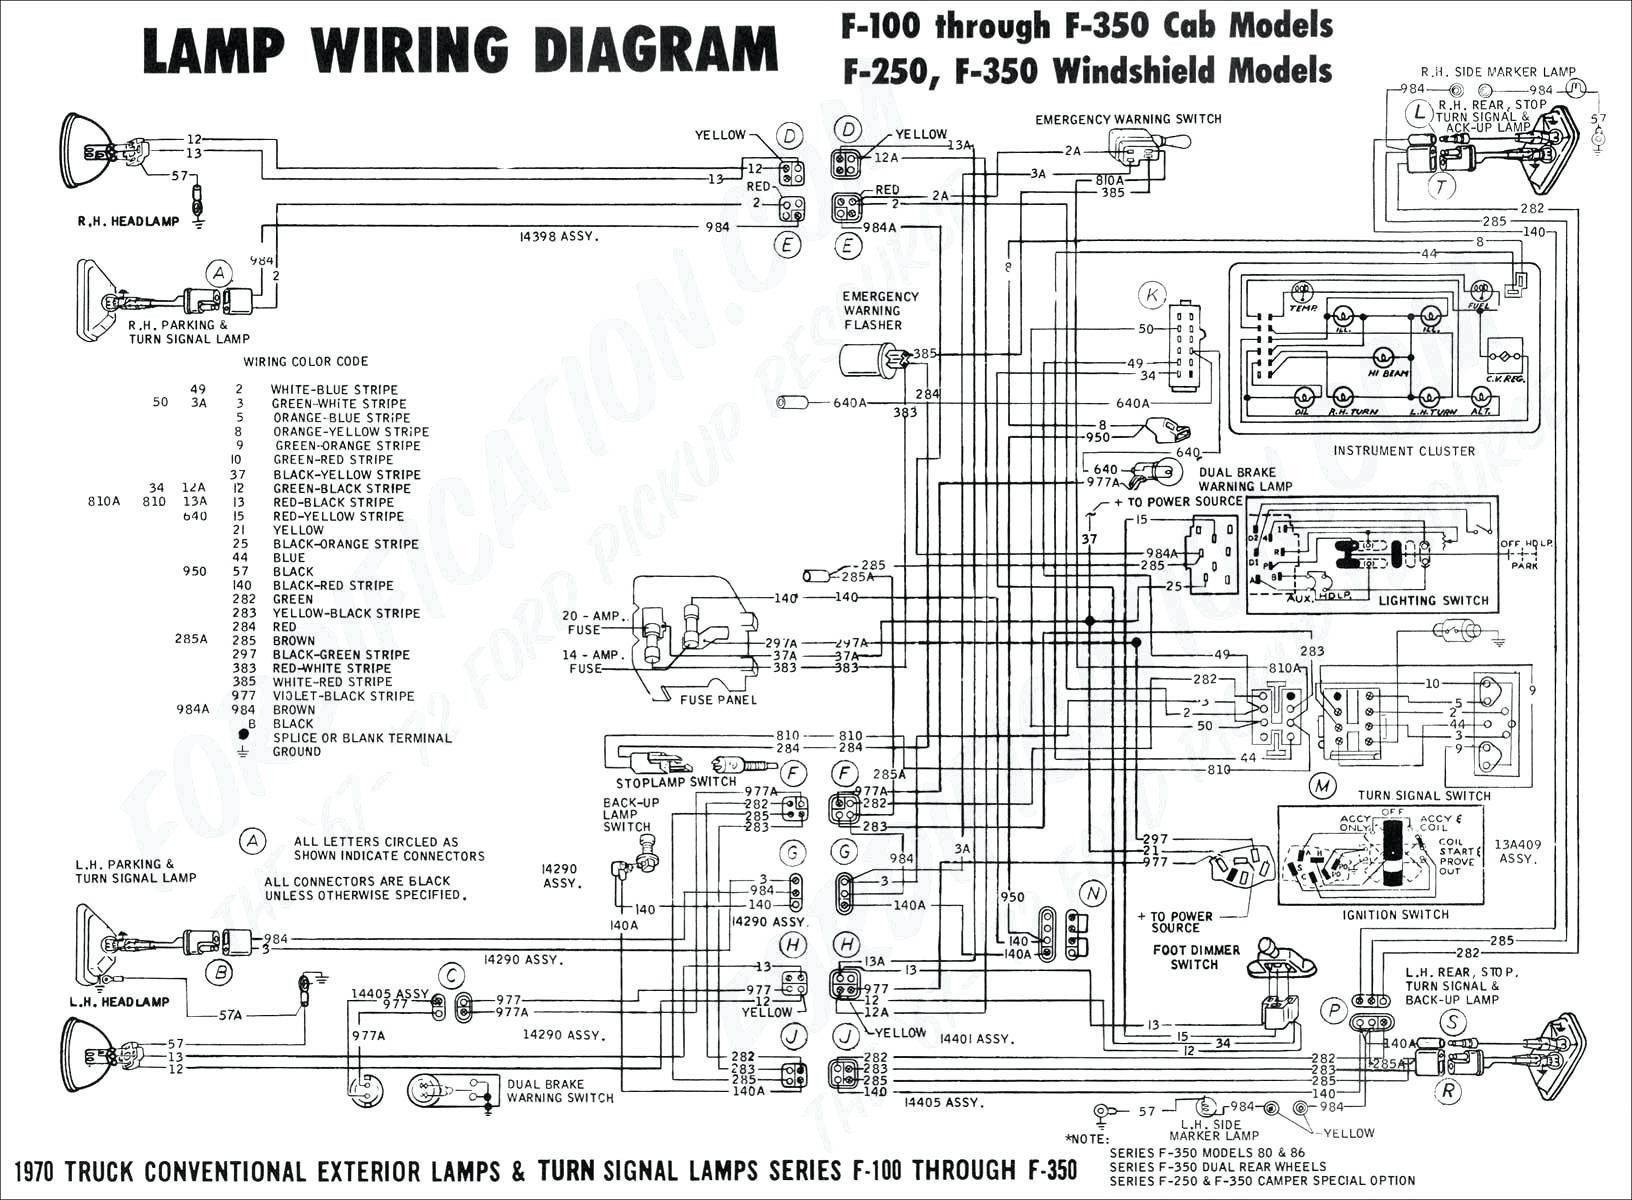 Chevrolet Truck Wiring Diagrams 2010 Chevy Truck Wiring Diagram Wiring Diagram toolbox Of Chevrolet Truck Wiring Diagrams